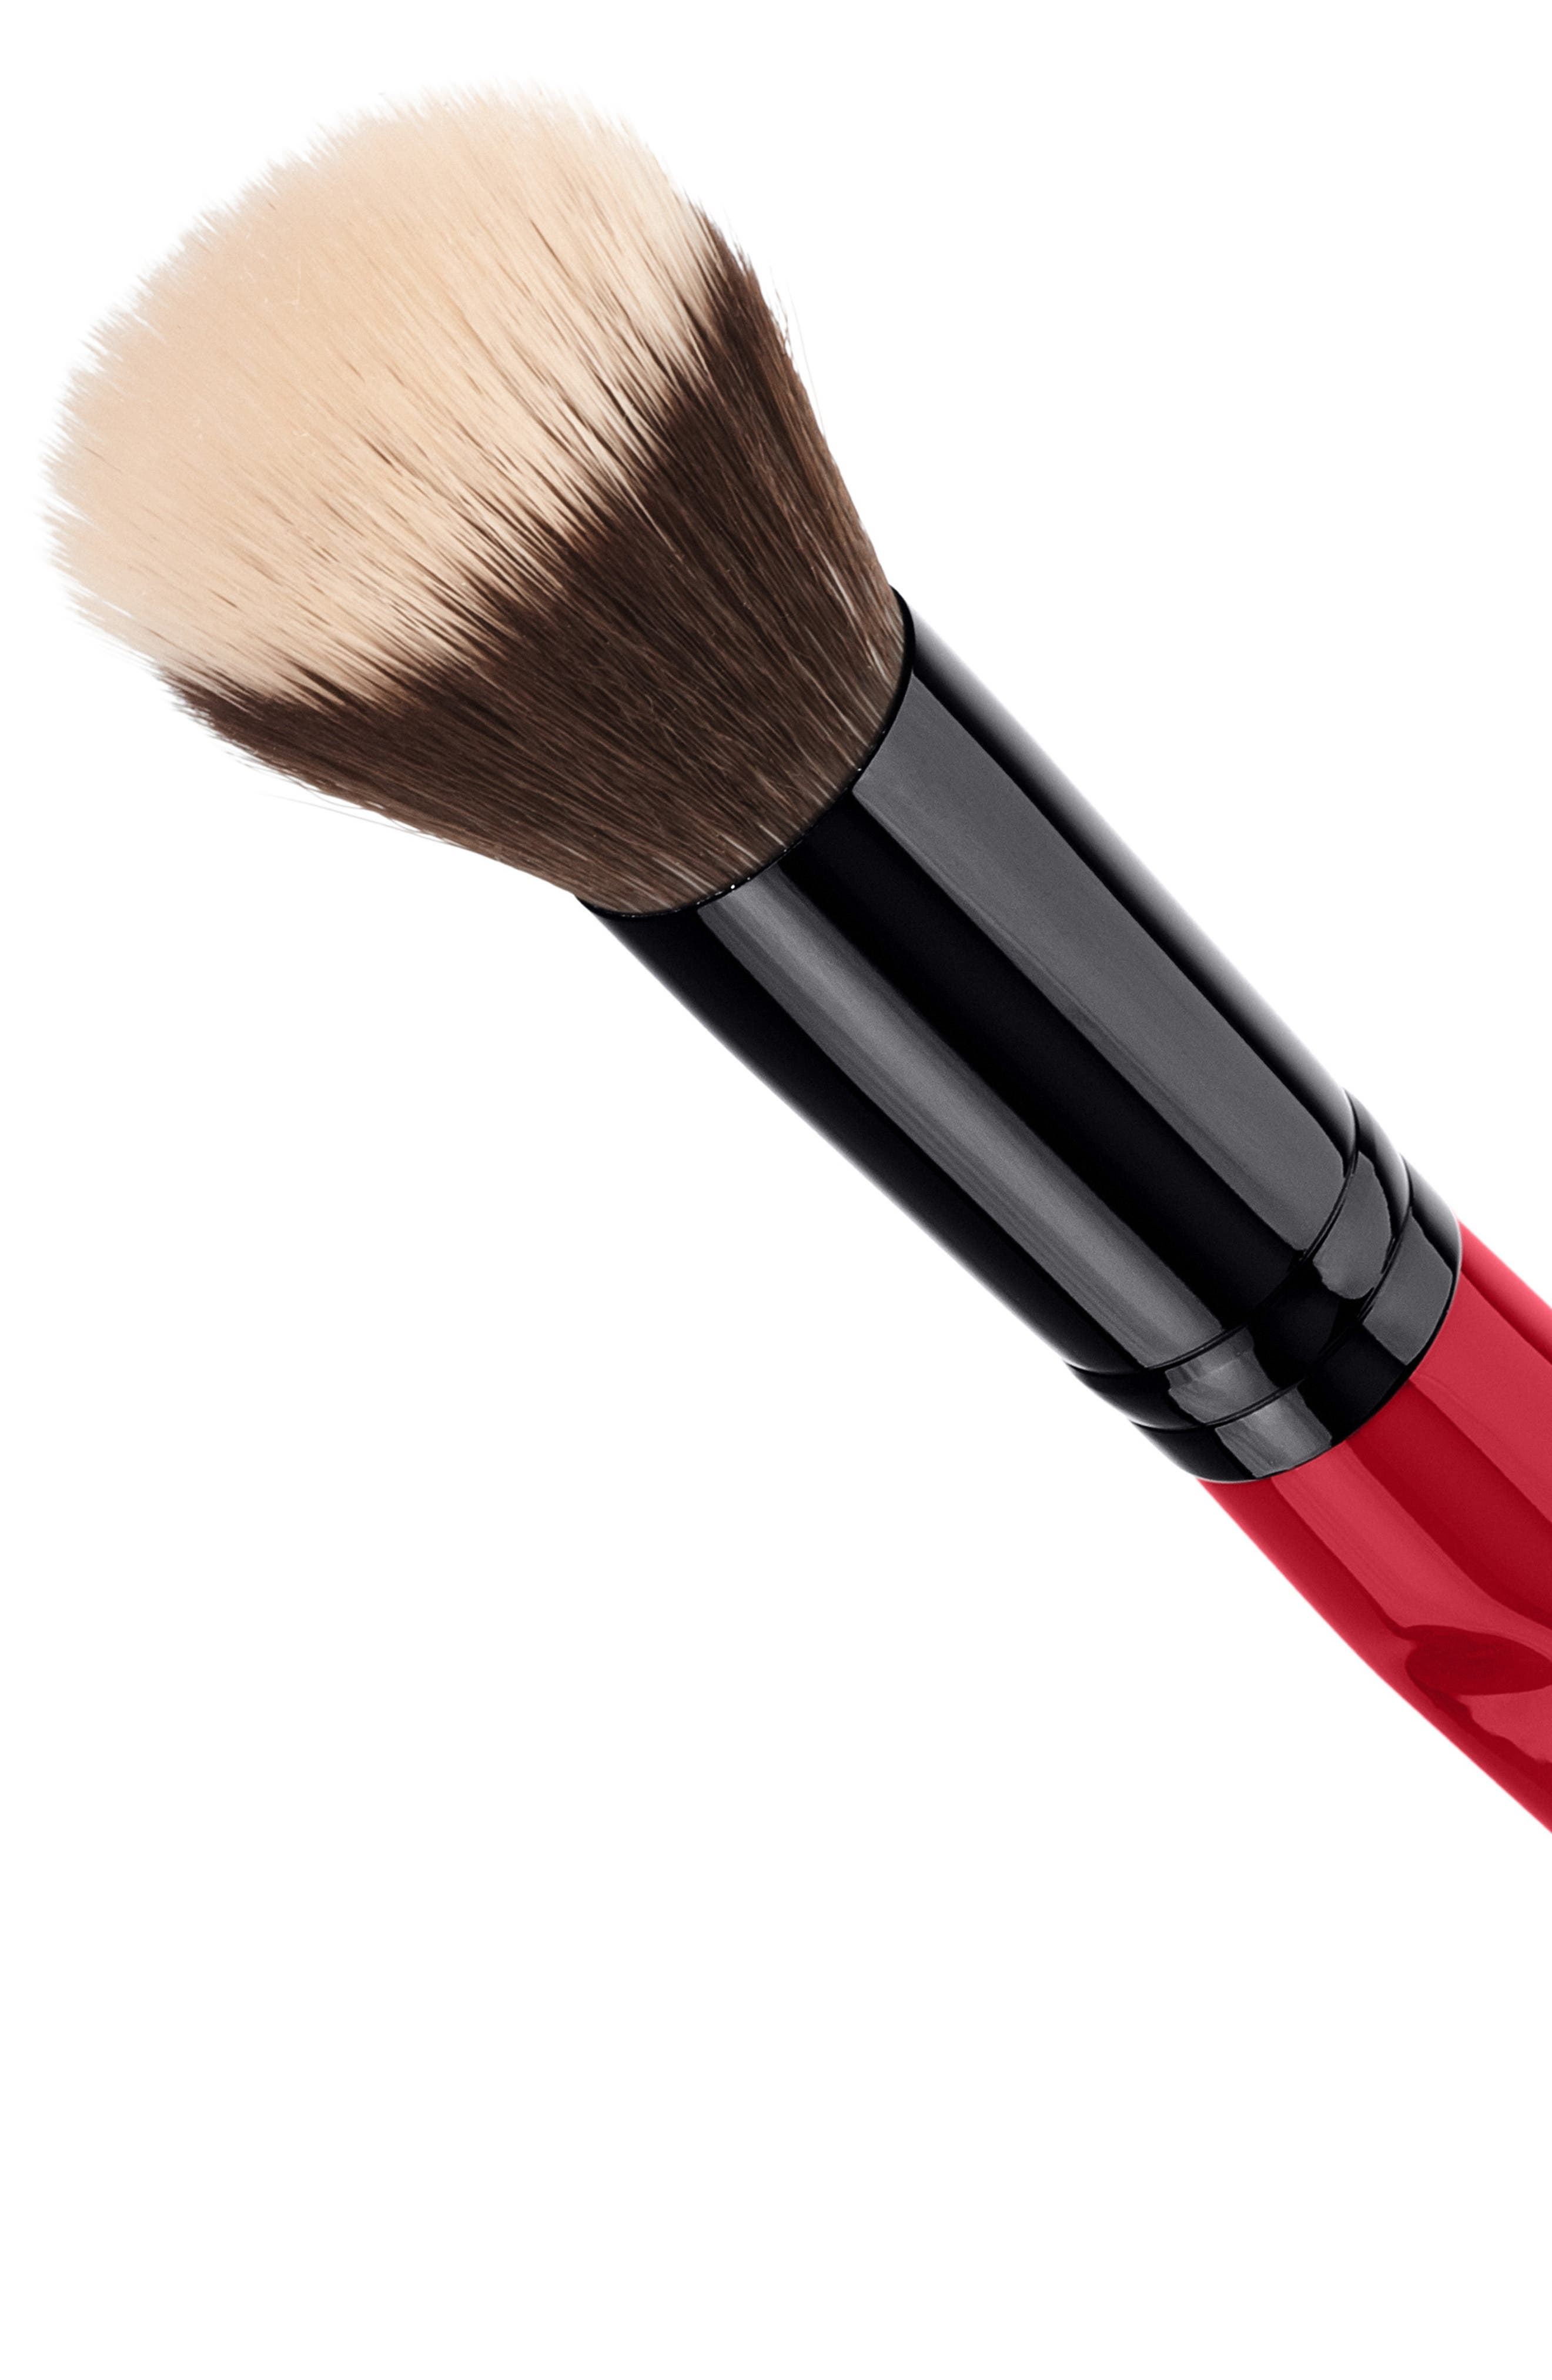 Stippling Foundation Brush,                             Alternate thumbnail 2, color,                             NO COLOR